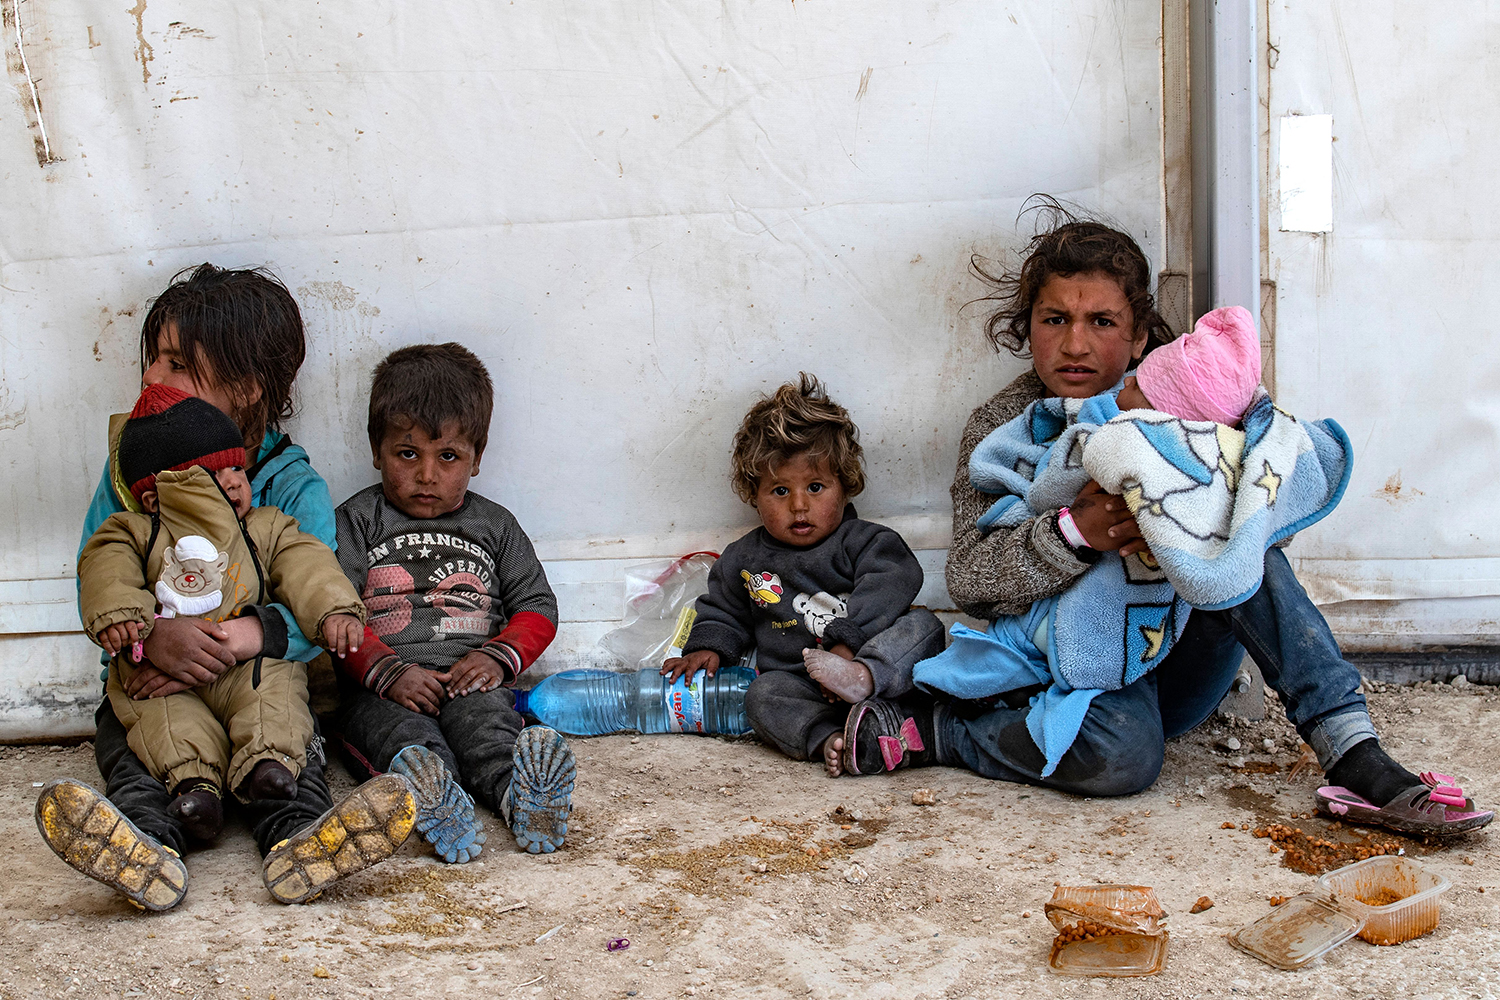 Syrian women and children sit with their belongings as they wait to leave following their release from the Kurdish-run al-Hol refugee camp, which holds suspected relatives of Islamic State fighters, in northeastern Syria on March 18. DELIL SOULEIMAN/AFP via Getty Images